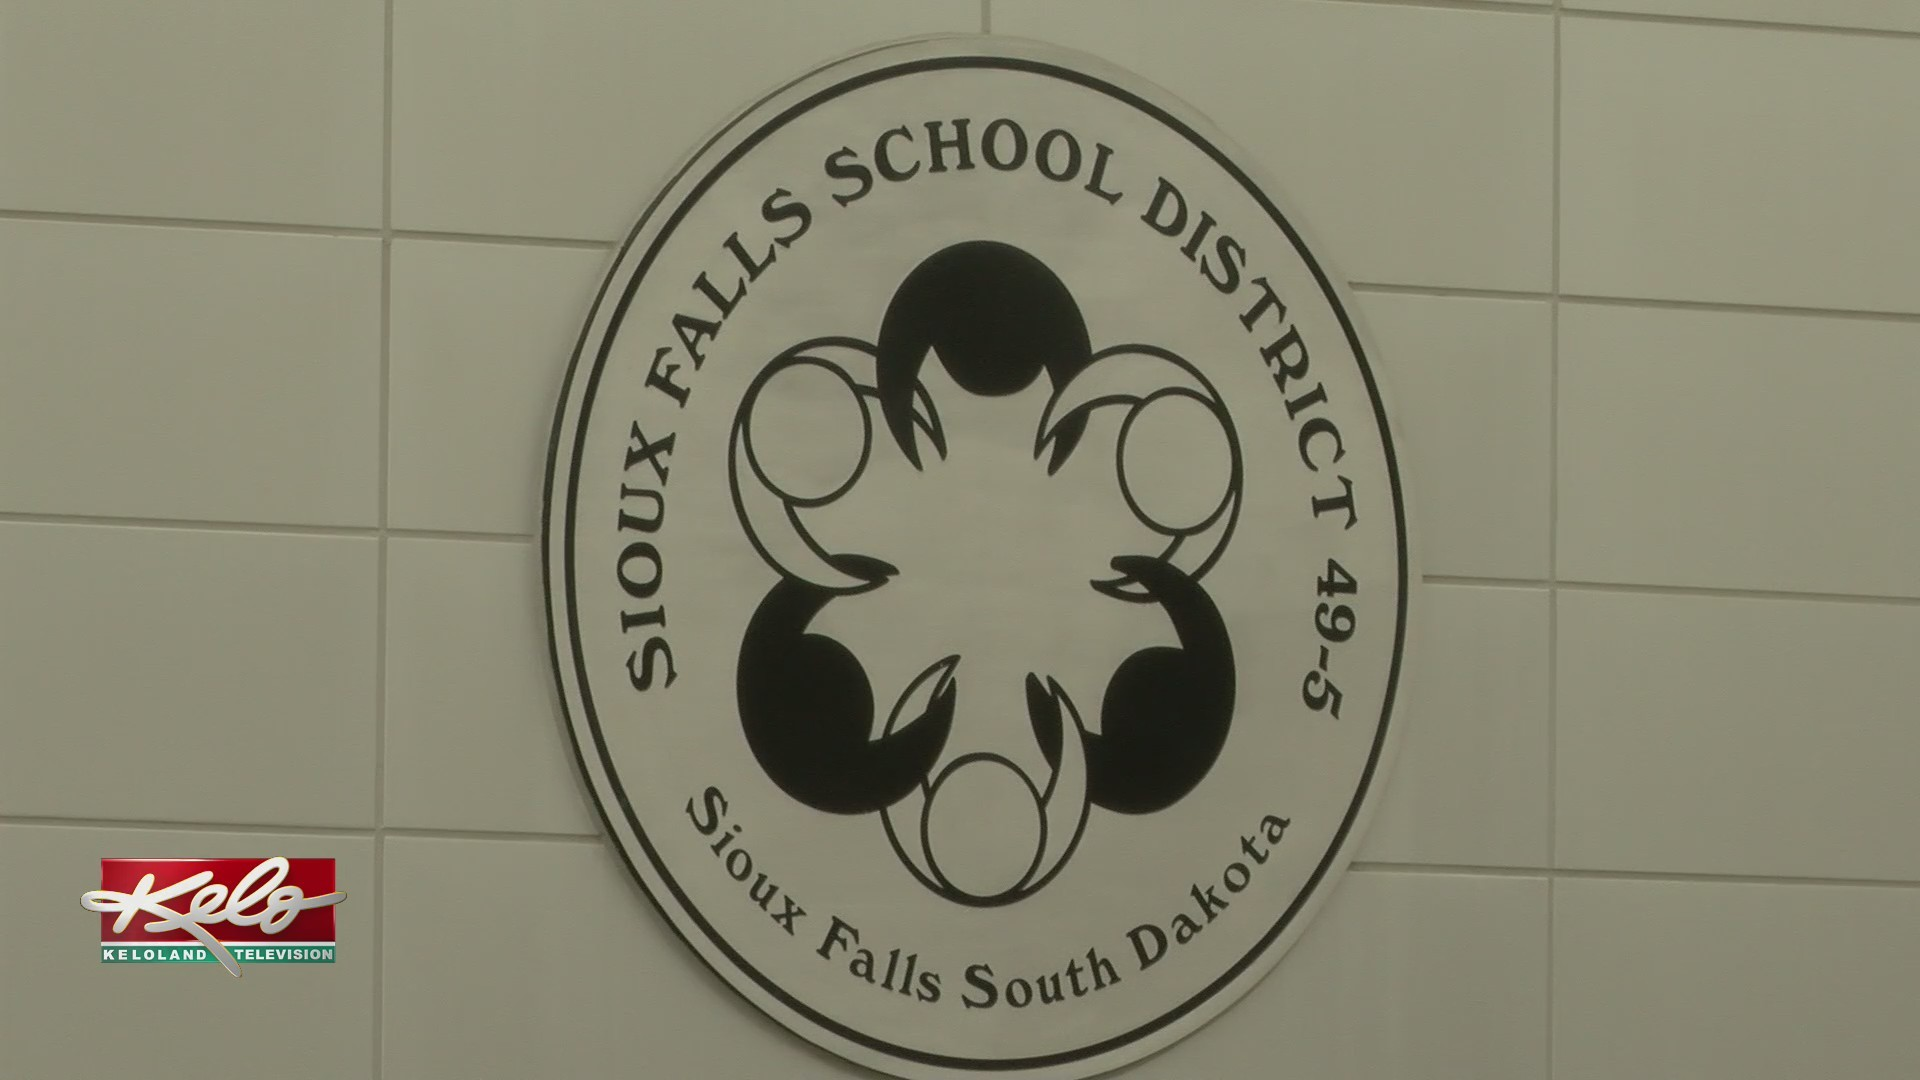 Sioux_Falls_School_District_Looks_At_Bud_0_20190403230740